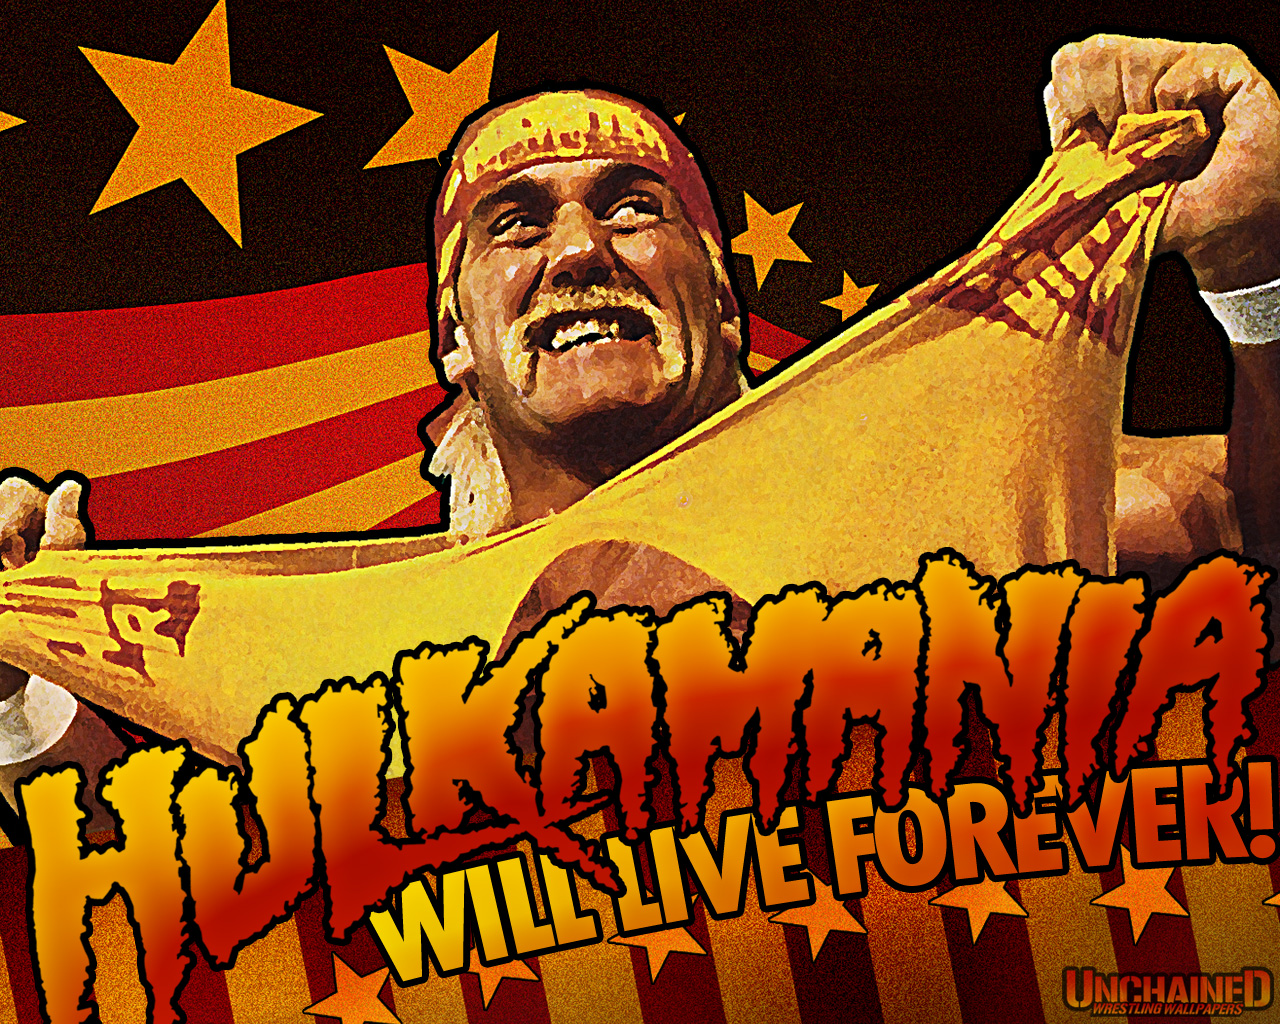 Wwe Hulk Hogan Wwe Hulk Hogan Wallpapers Hogan Pictures Wwe